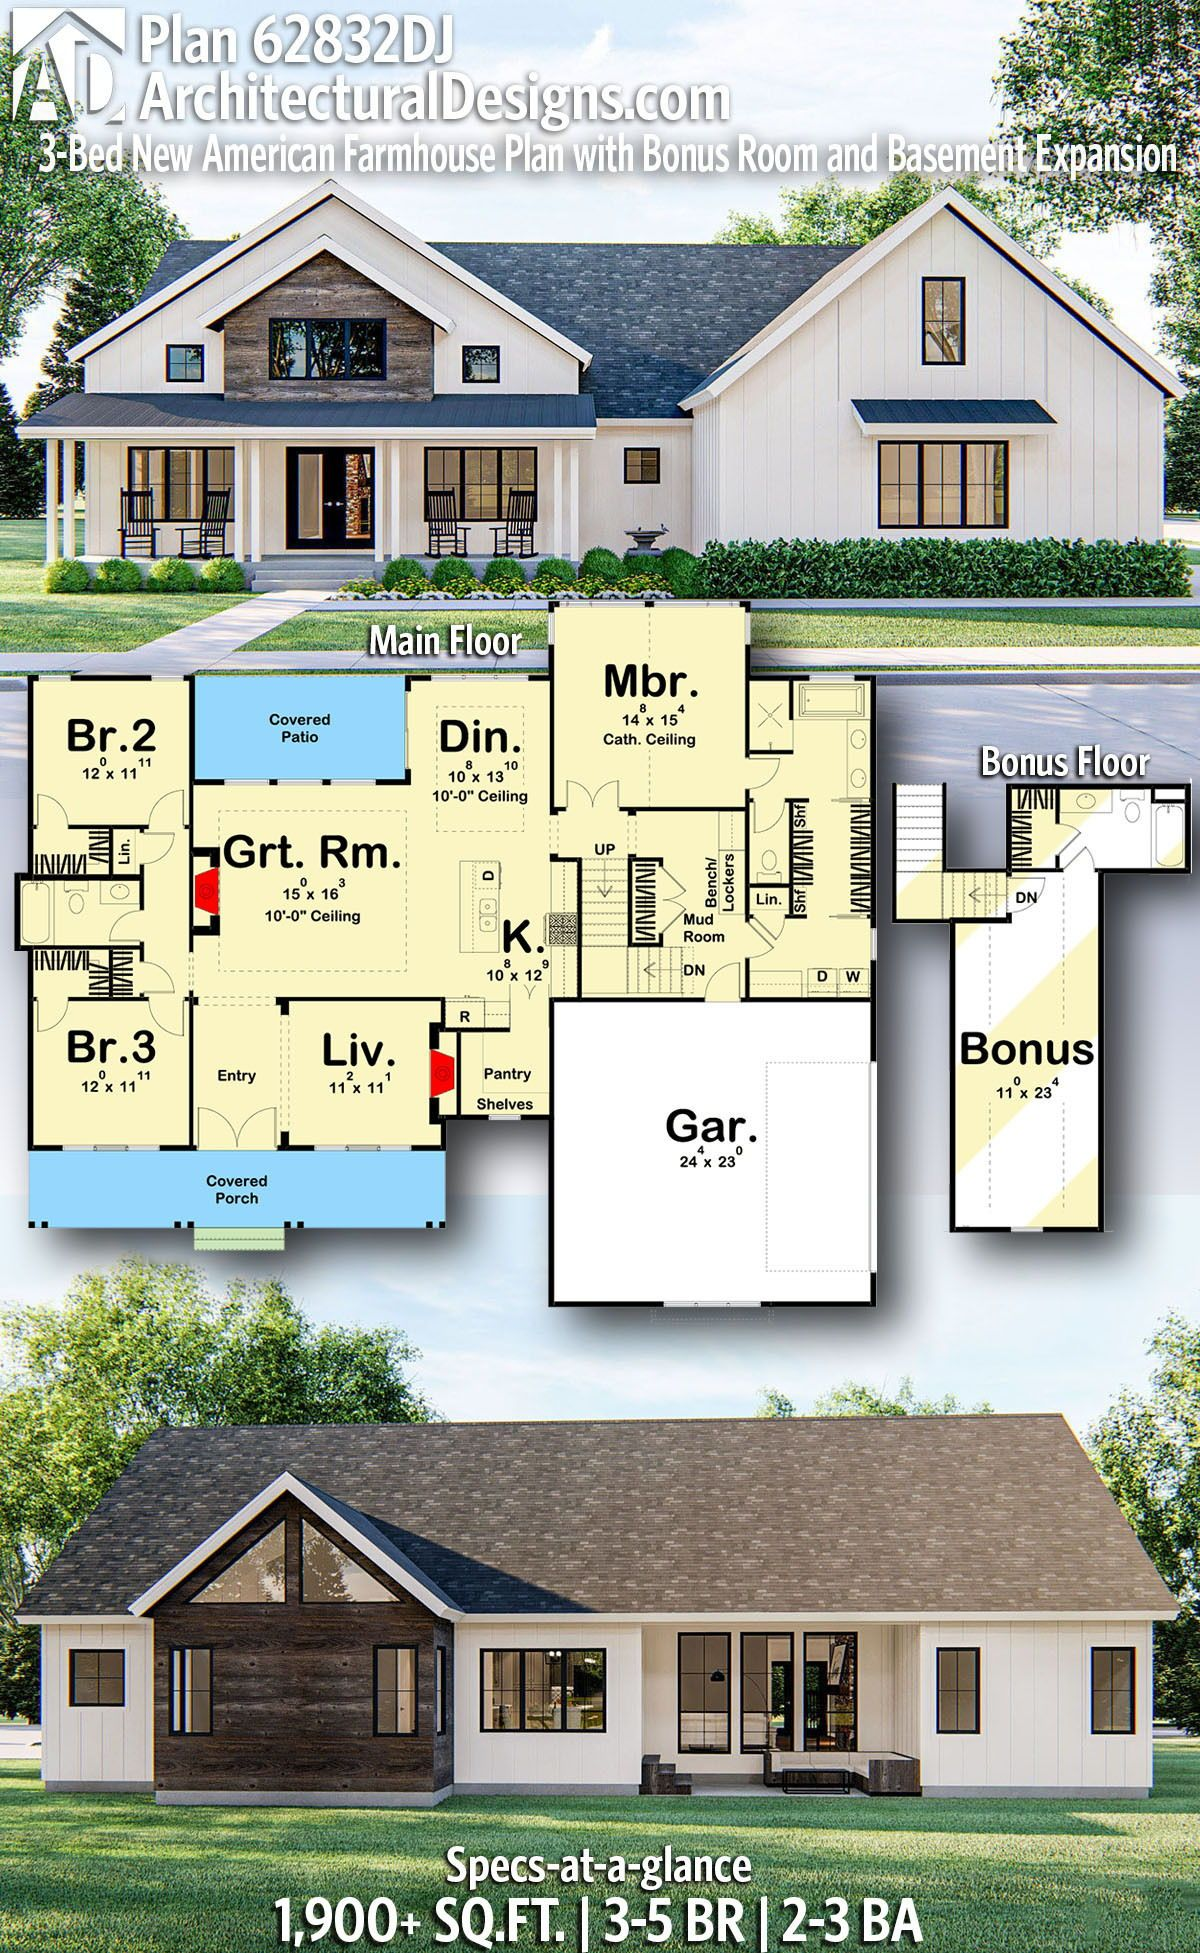 Plan 62832dj 3 Bed New American Farmhouse Plan With Bonus Room And Basement Expansion House Plans Farmhouse Craftsman House Plans Farmhouse Plans